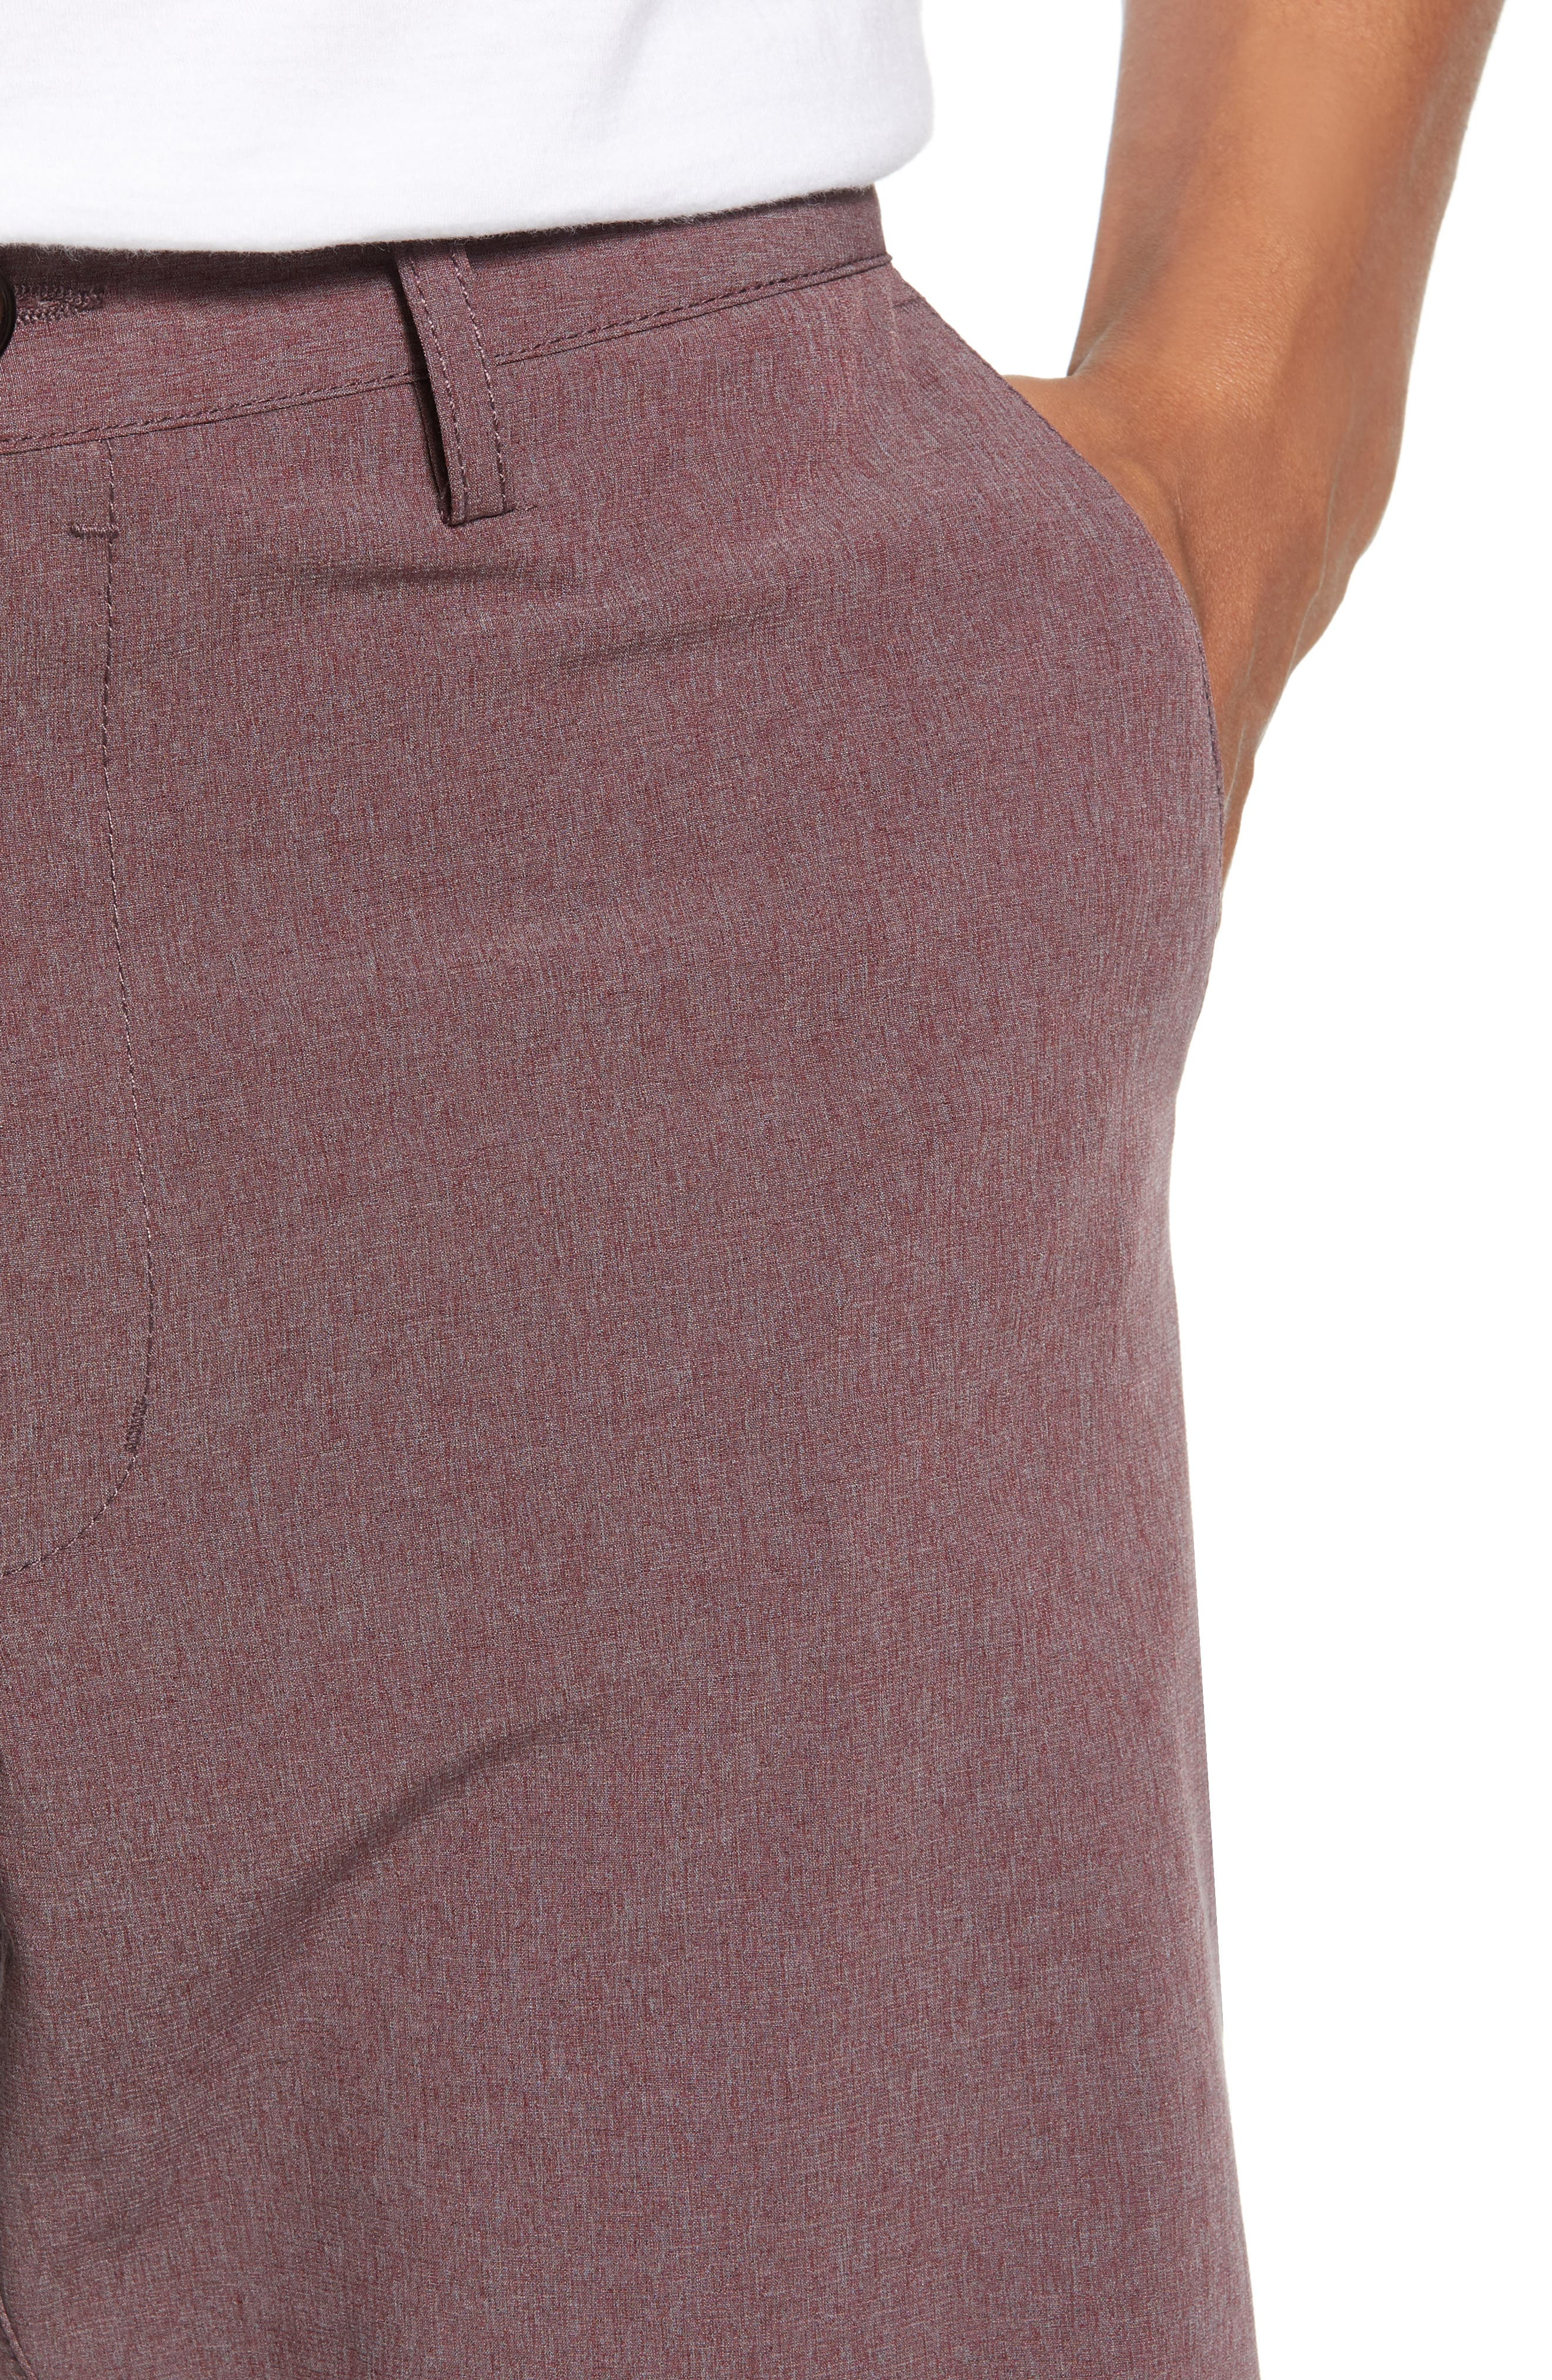 Adrenaline Stretch Shorts,                             Alternate thumbnail 5, color,                             Berry